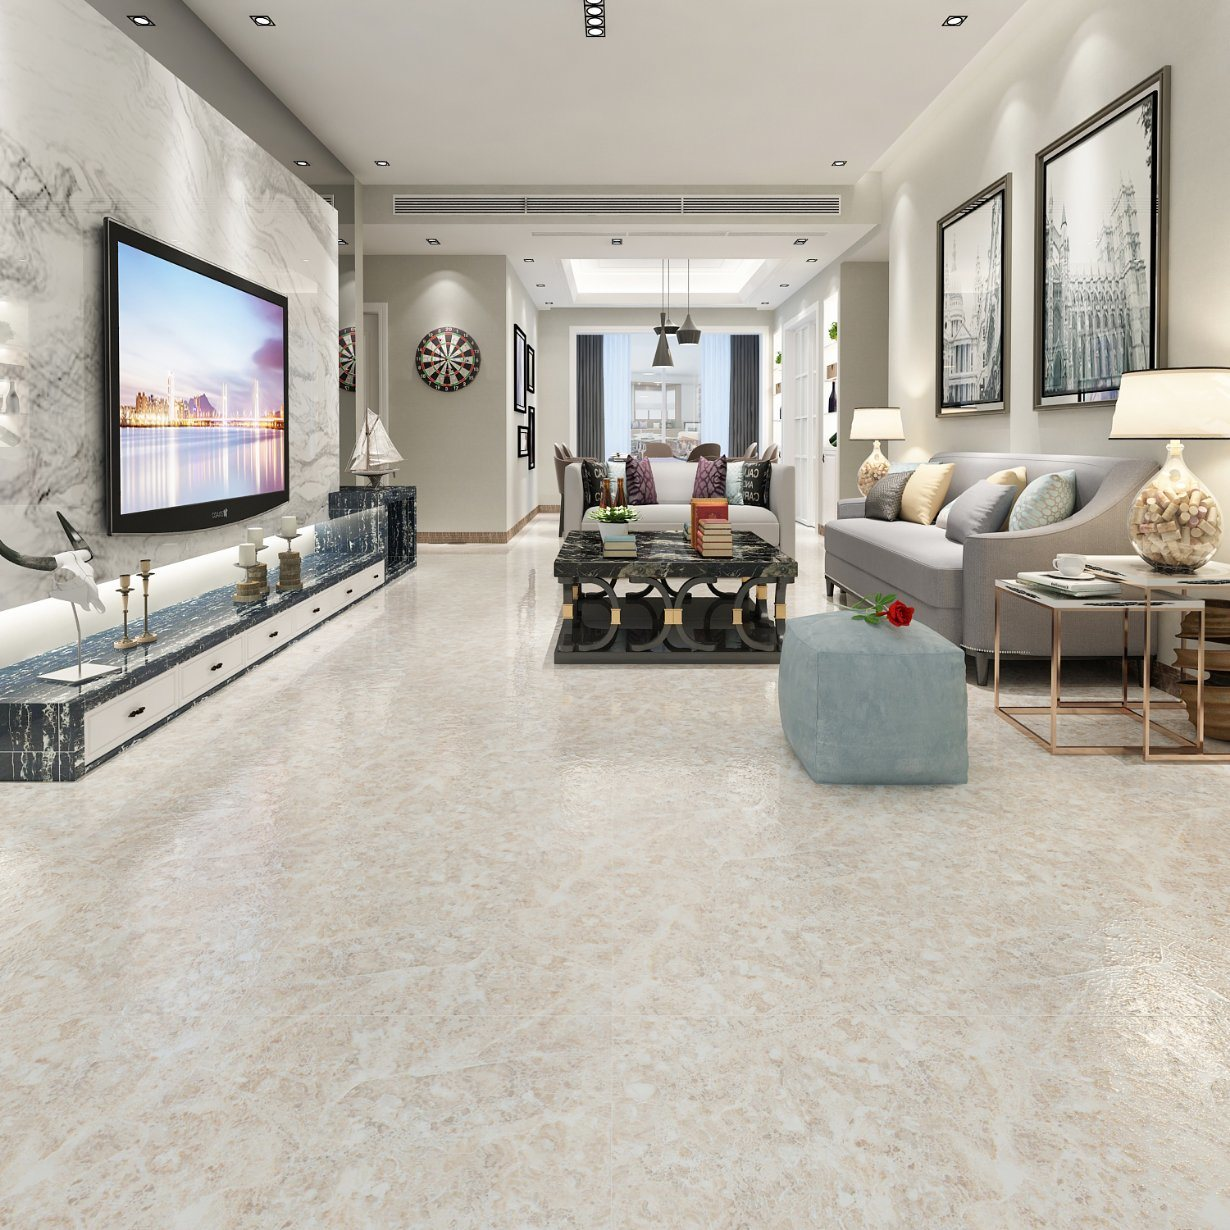 China Midwest Houston Mid America Chicago Marble Tile Floor Living